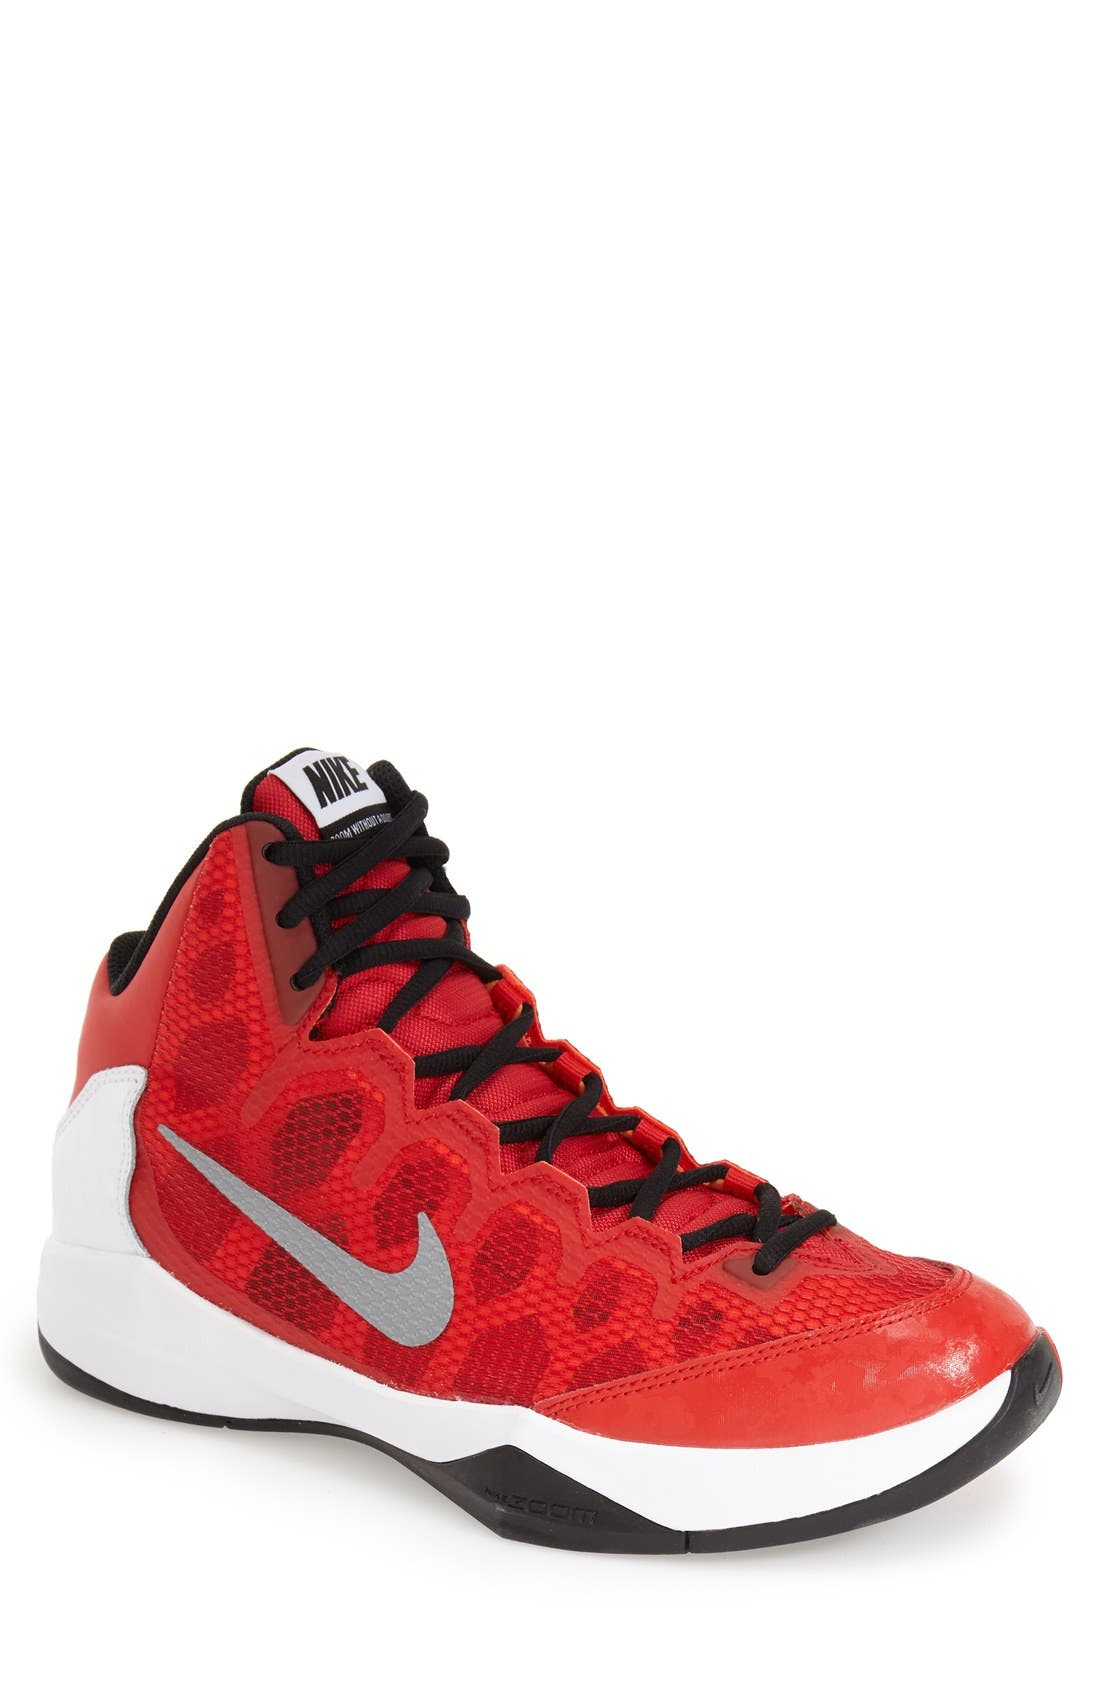 Main Image - Nike 'Zoom - Without a Doubt' Basketball Shoe (Men)